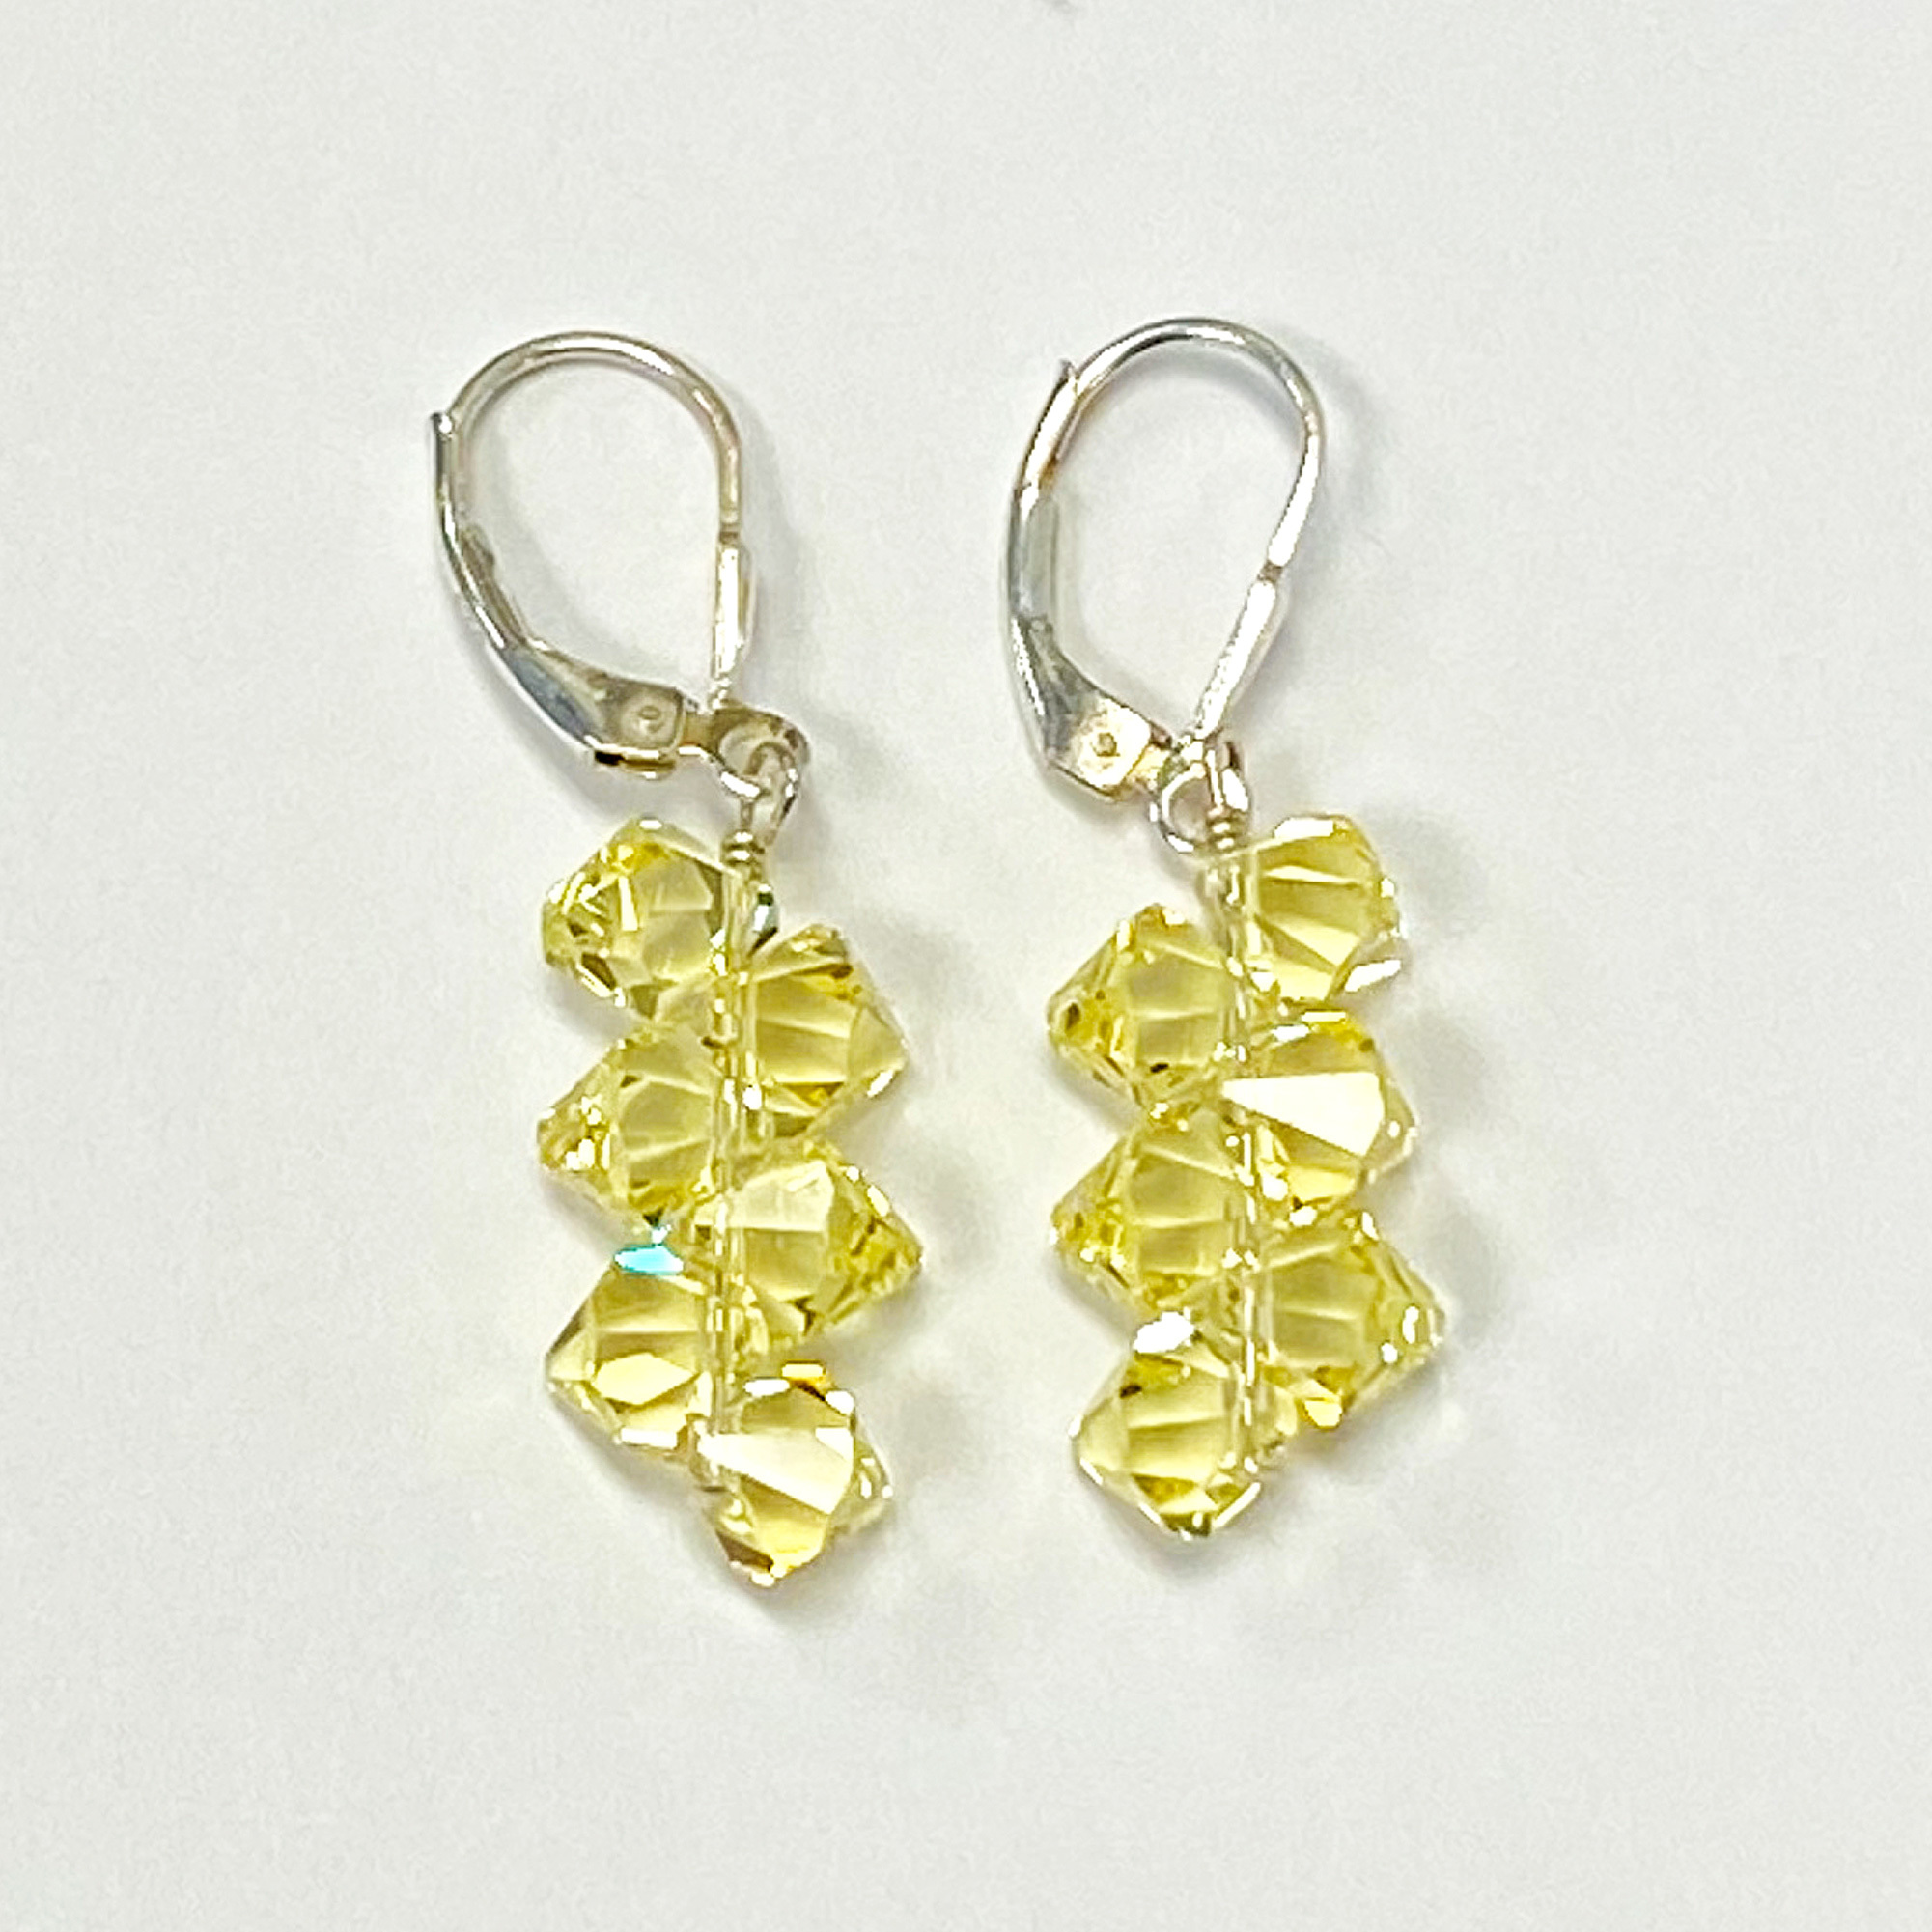 Made-with-Swarovski-Elements-Crystal-Drop-Sterling-Silver-Earrings thumbnail 47